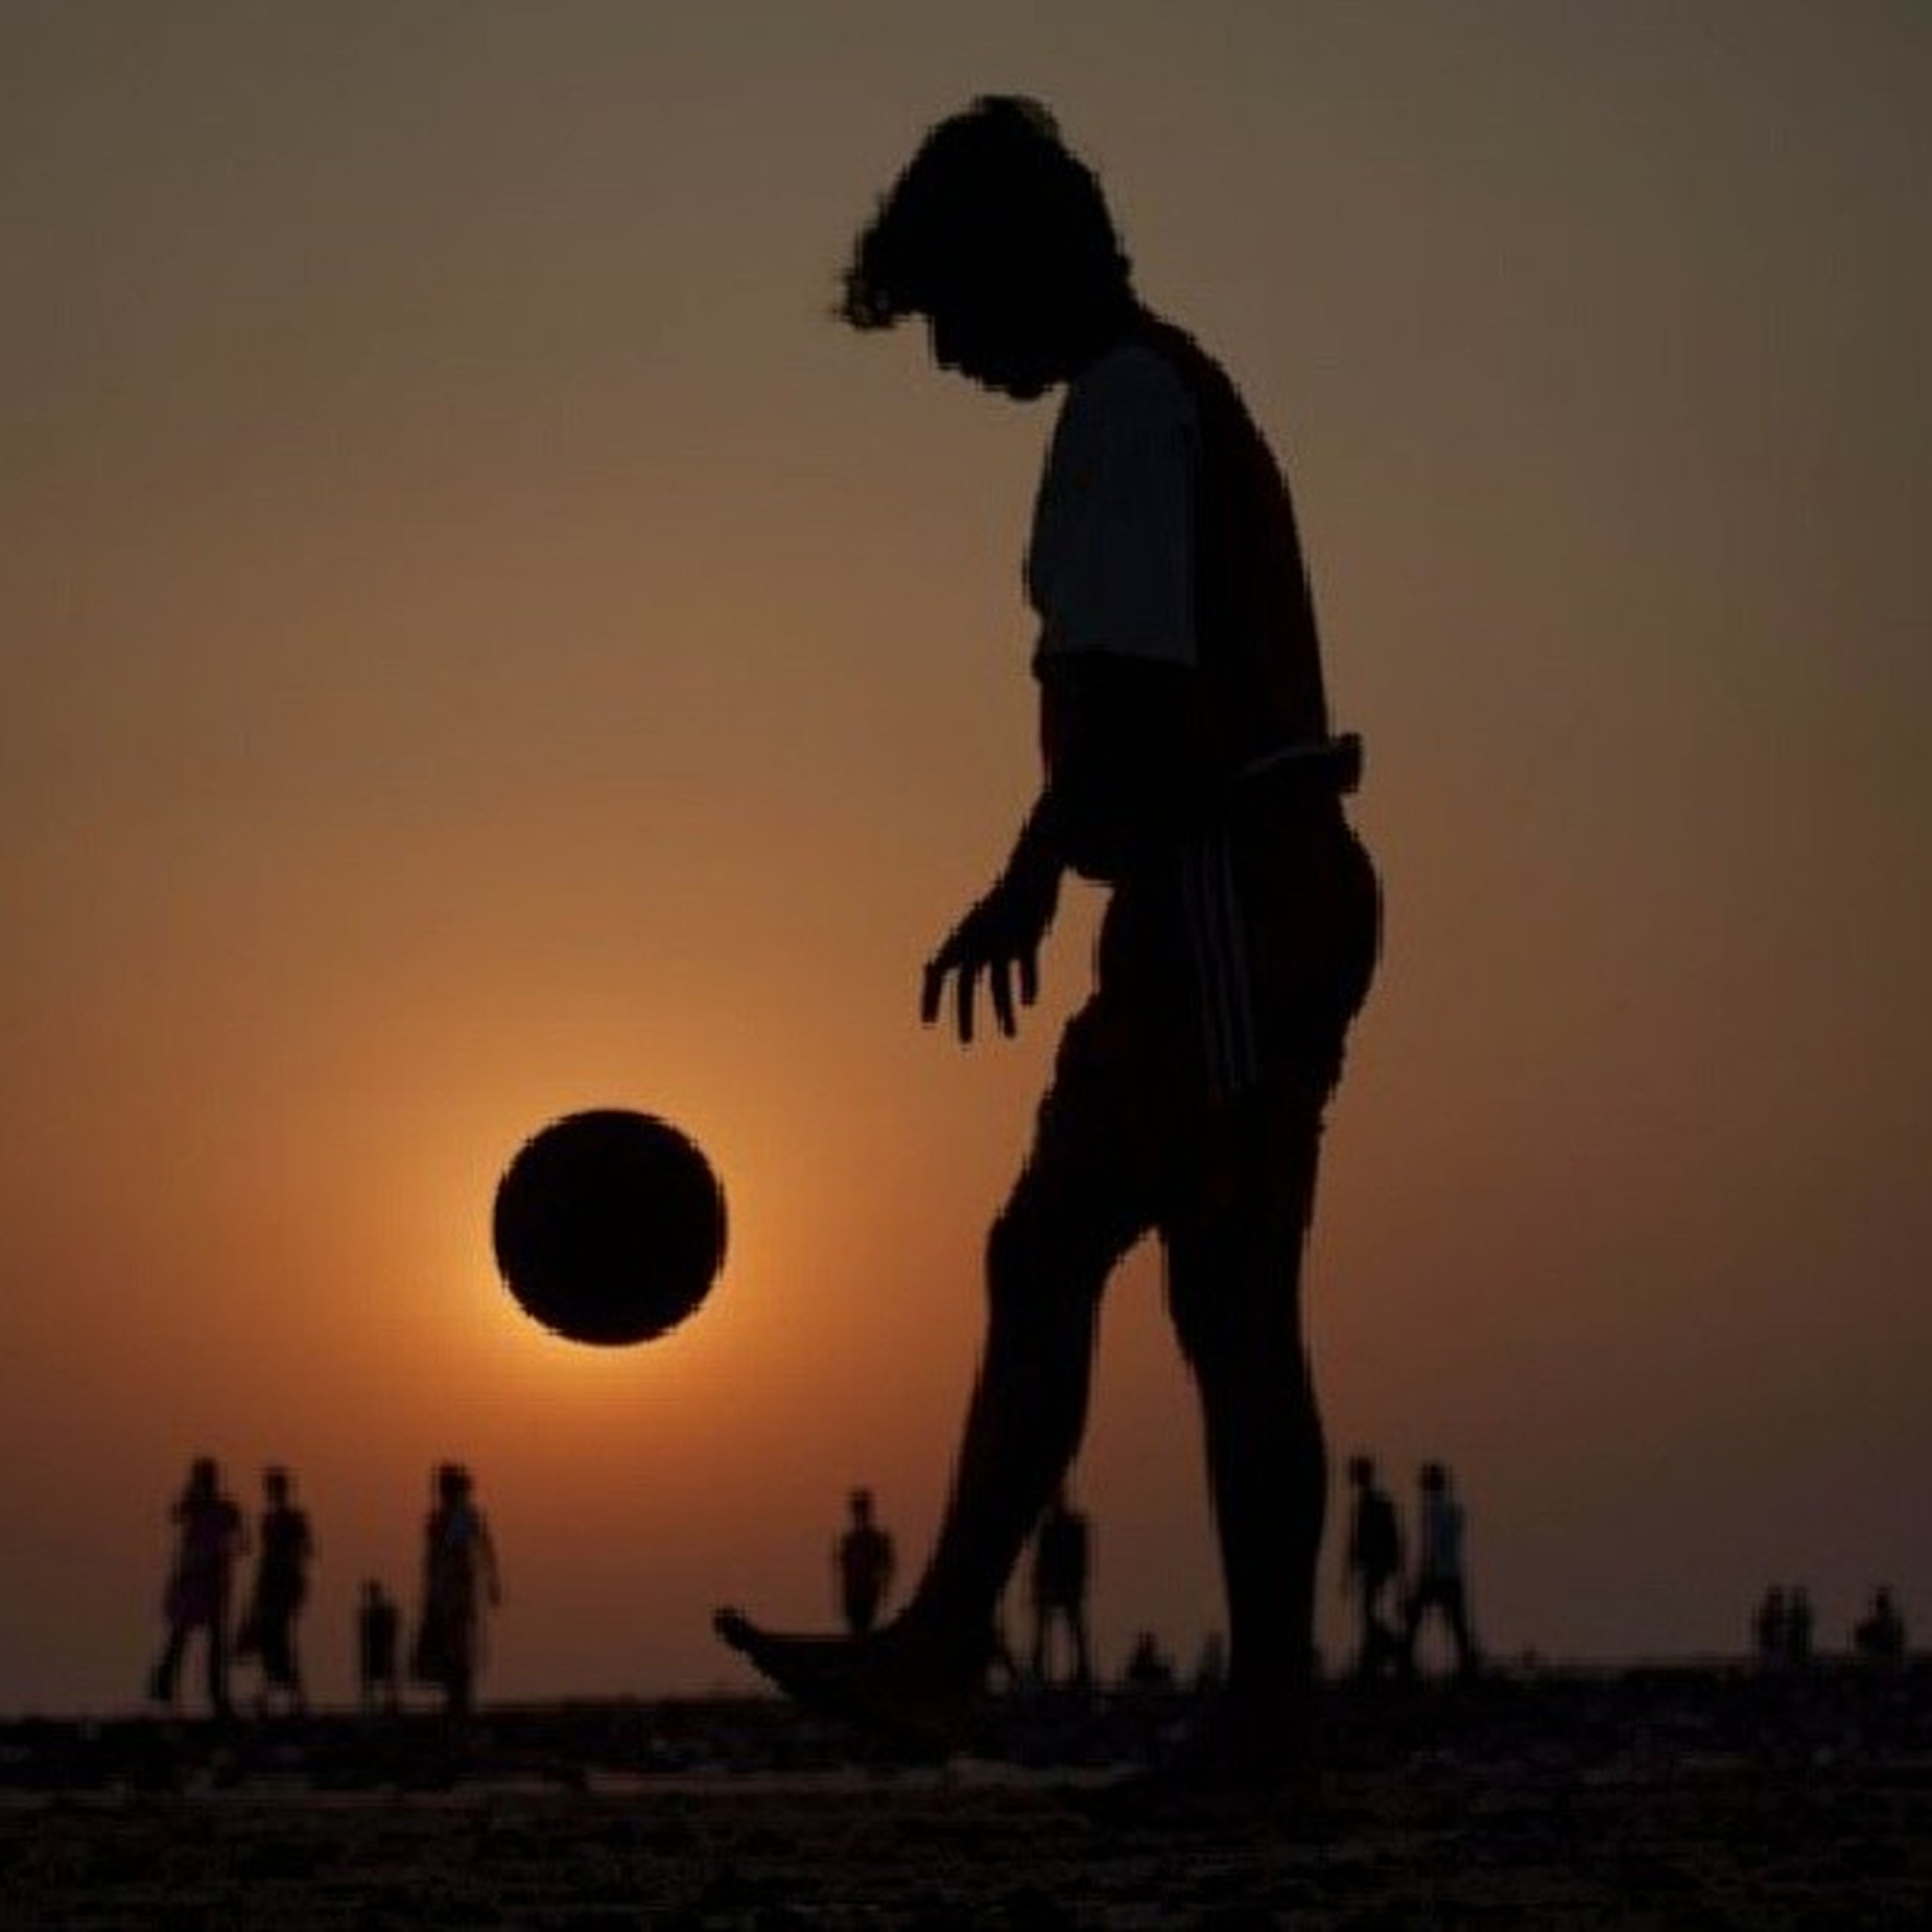 sunset, leisure activity, lifestyles, silhouette, beach, men, orange color, standing, sky, person, clear sky, full length, sun, copy space, childhood, sea, nature